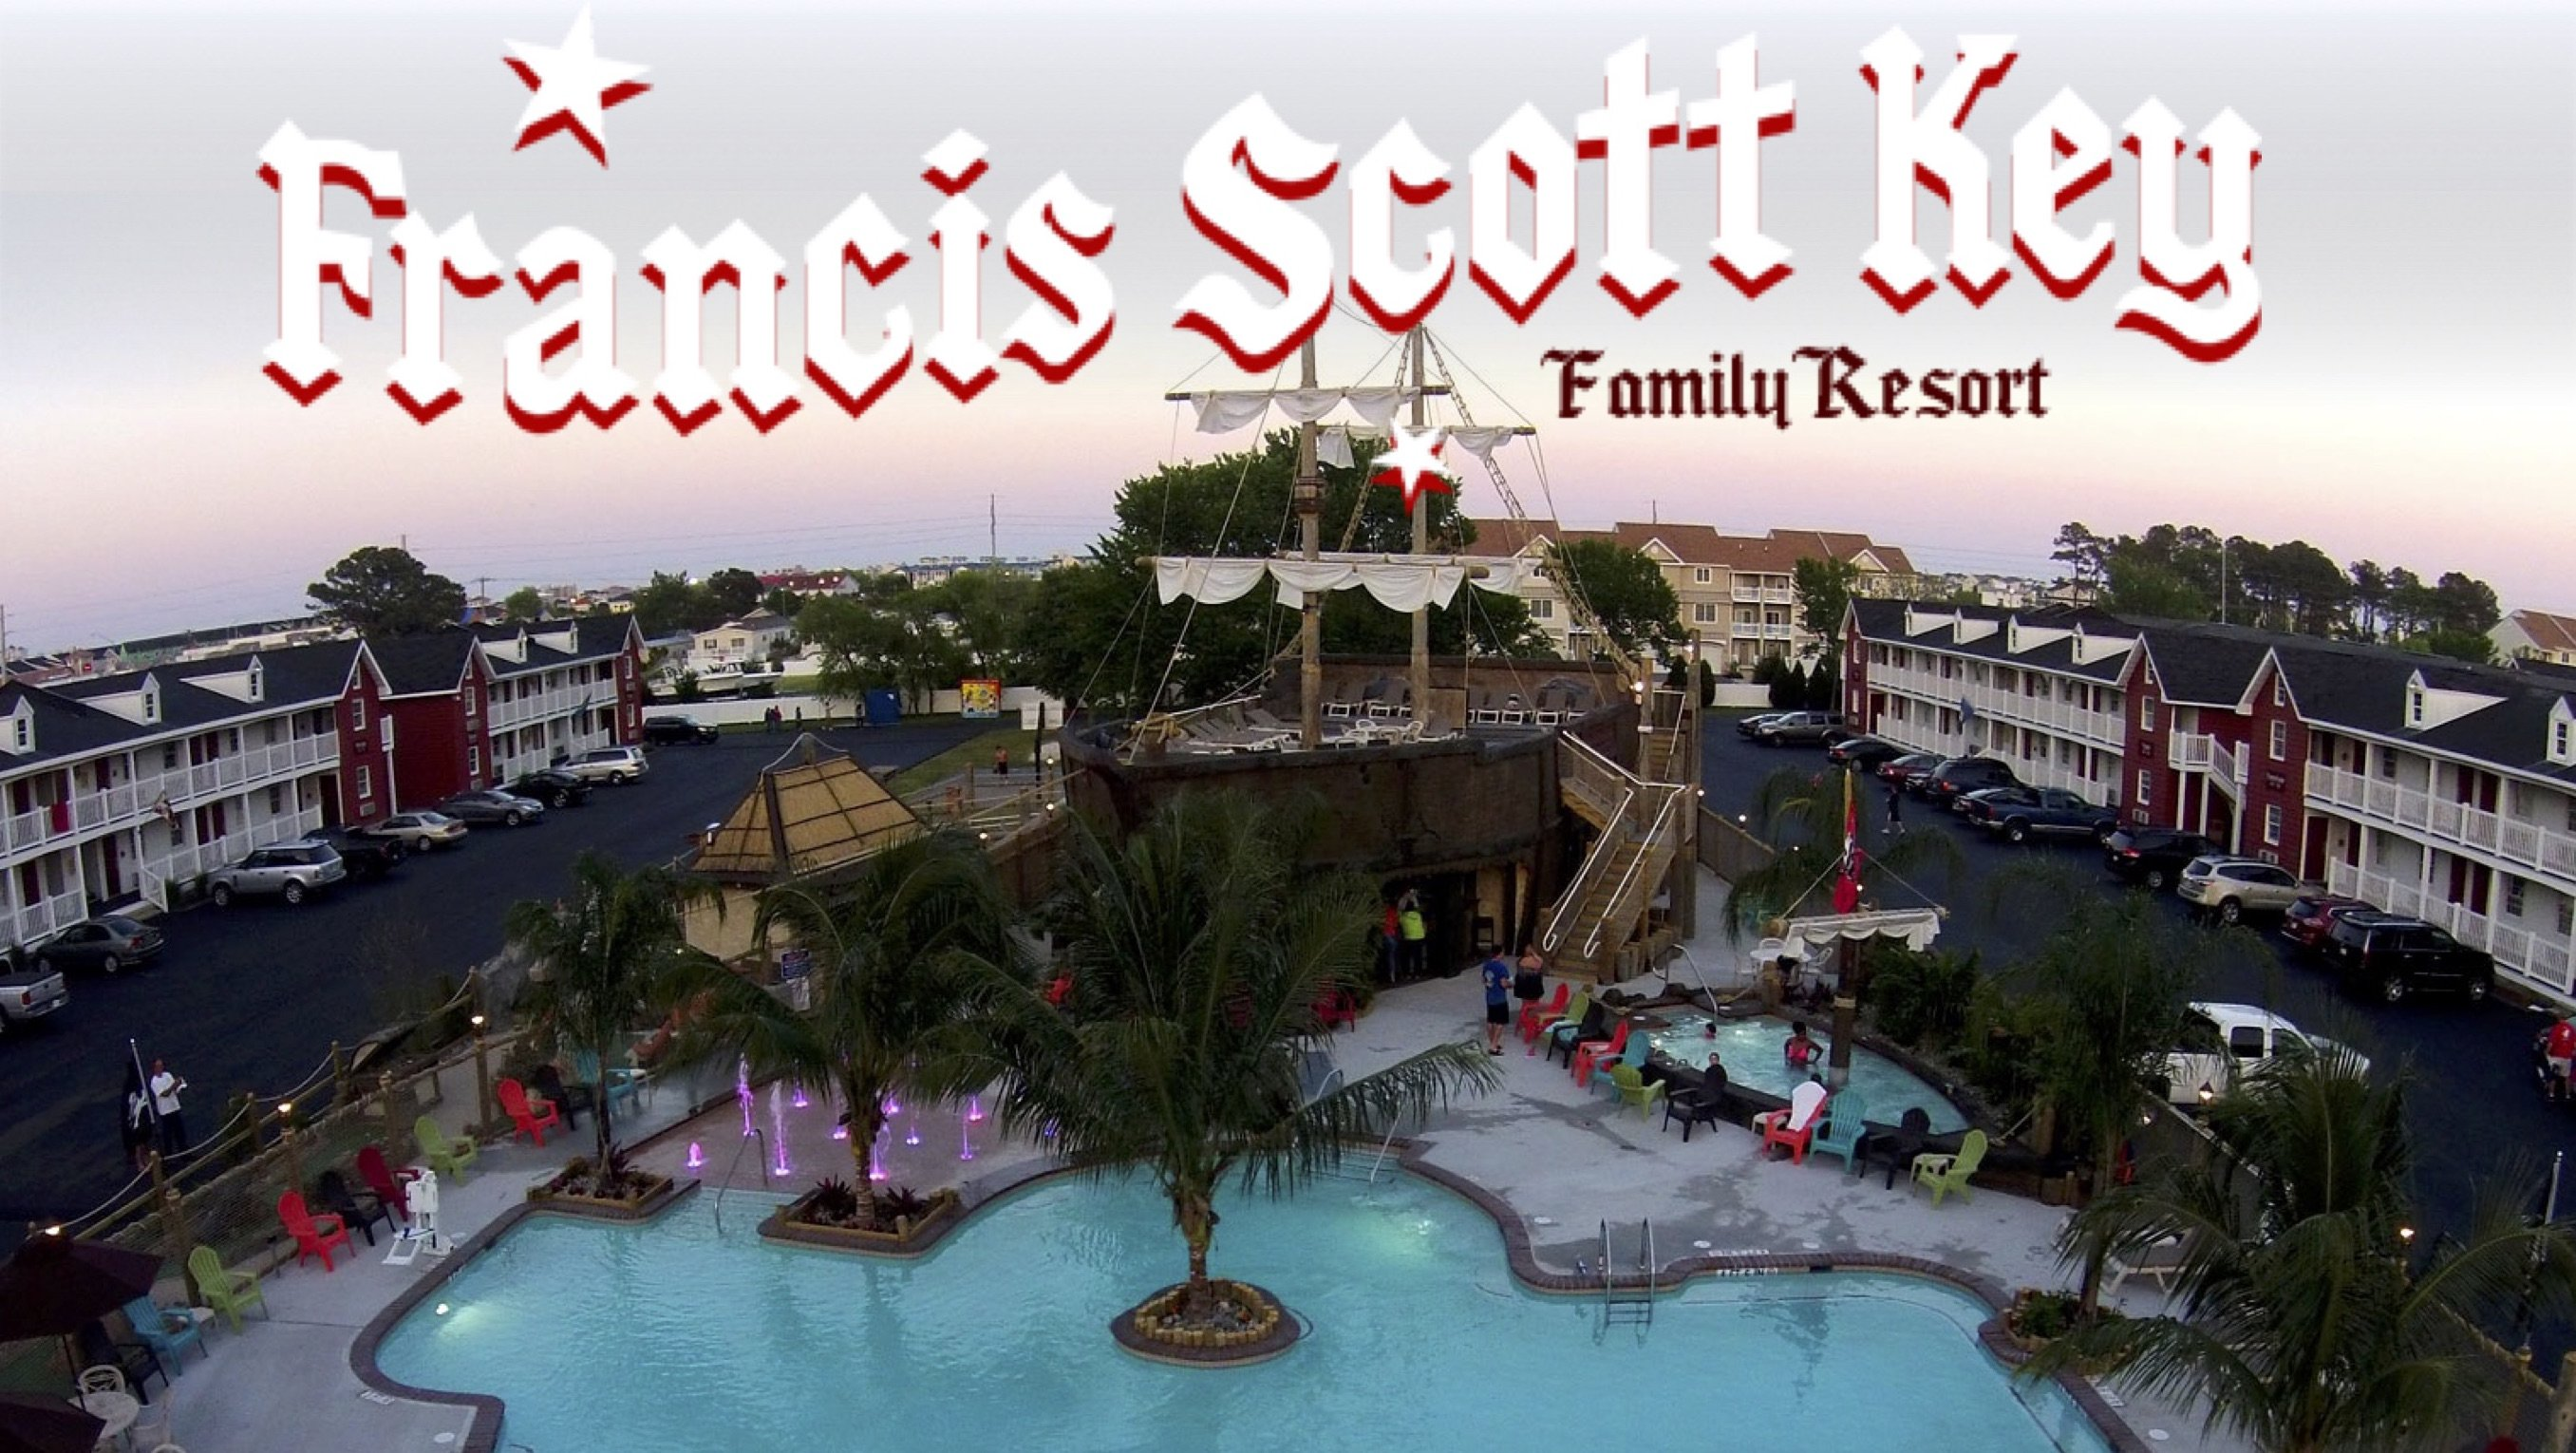 Francis Scott Key Family Resort  Fishing Trips Ocean City